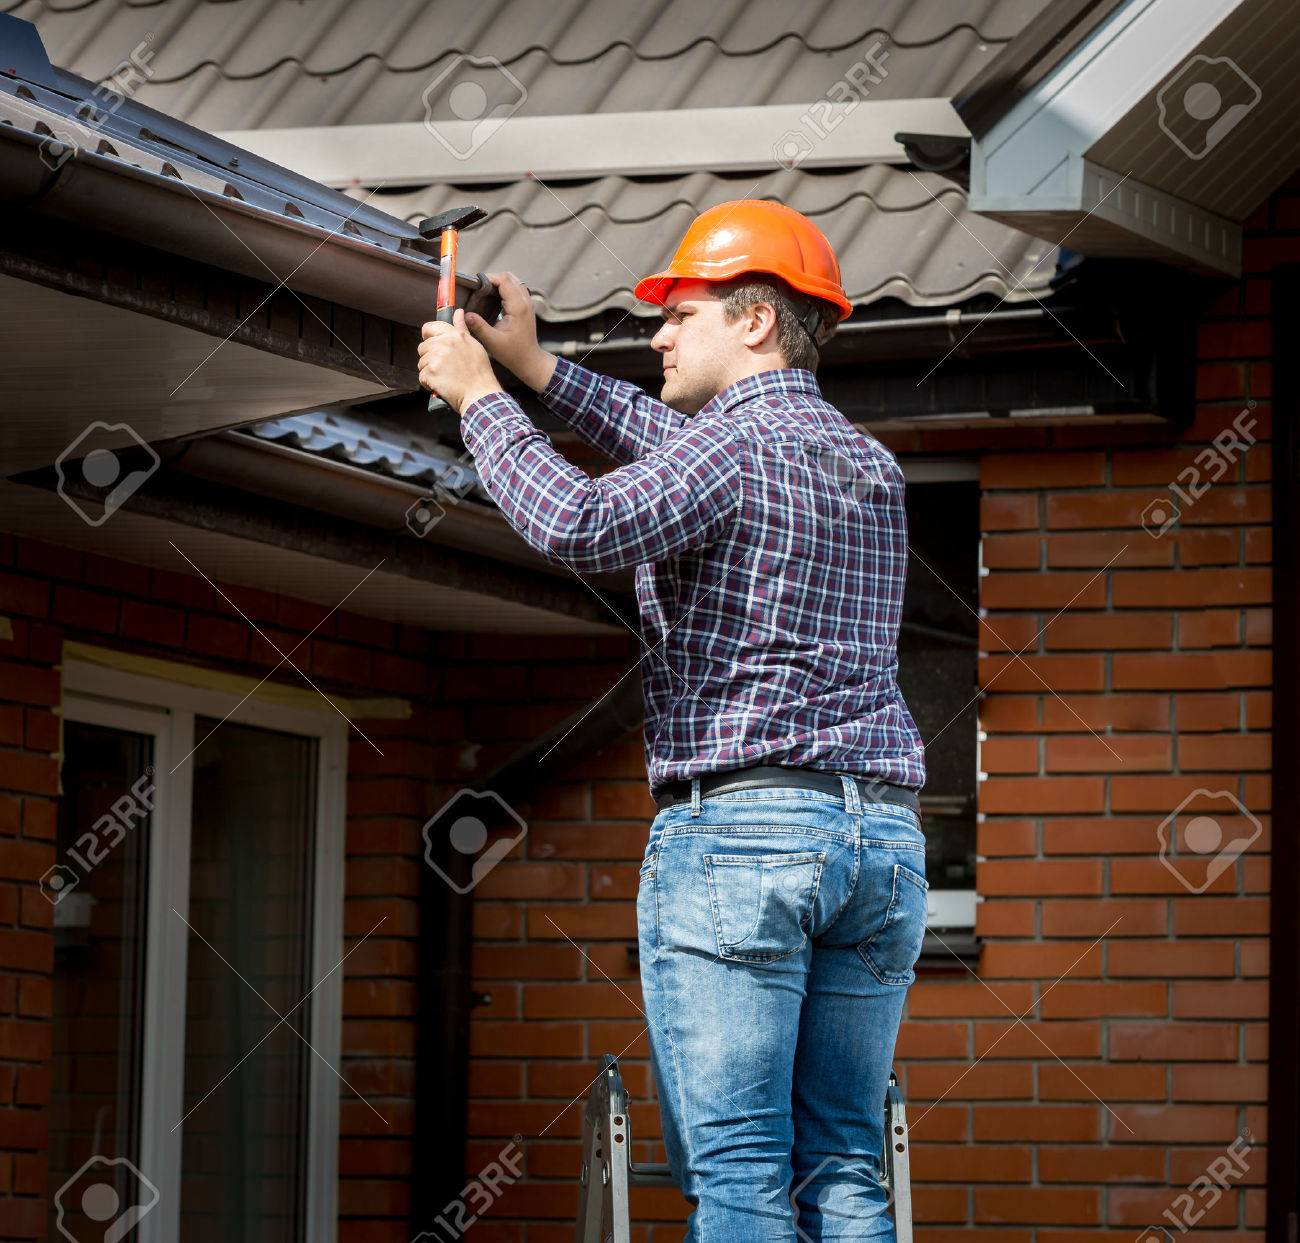 Professional carpenter hammering roof boards with hammer - 41600633